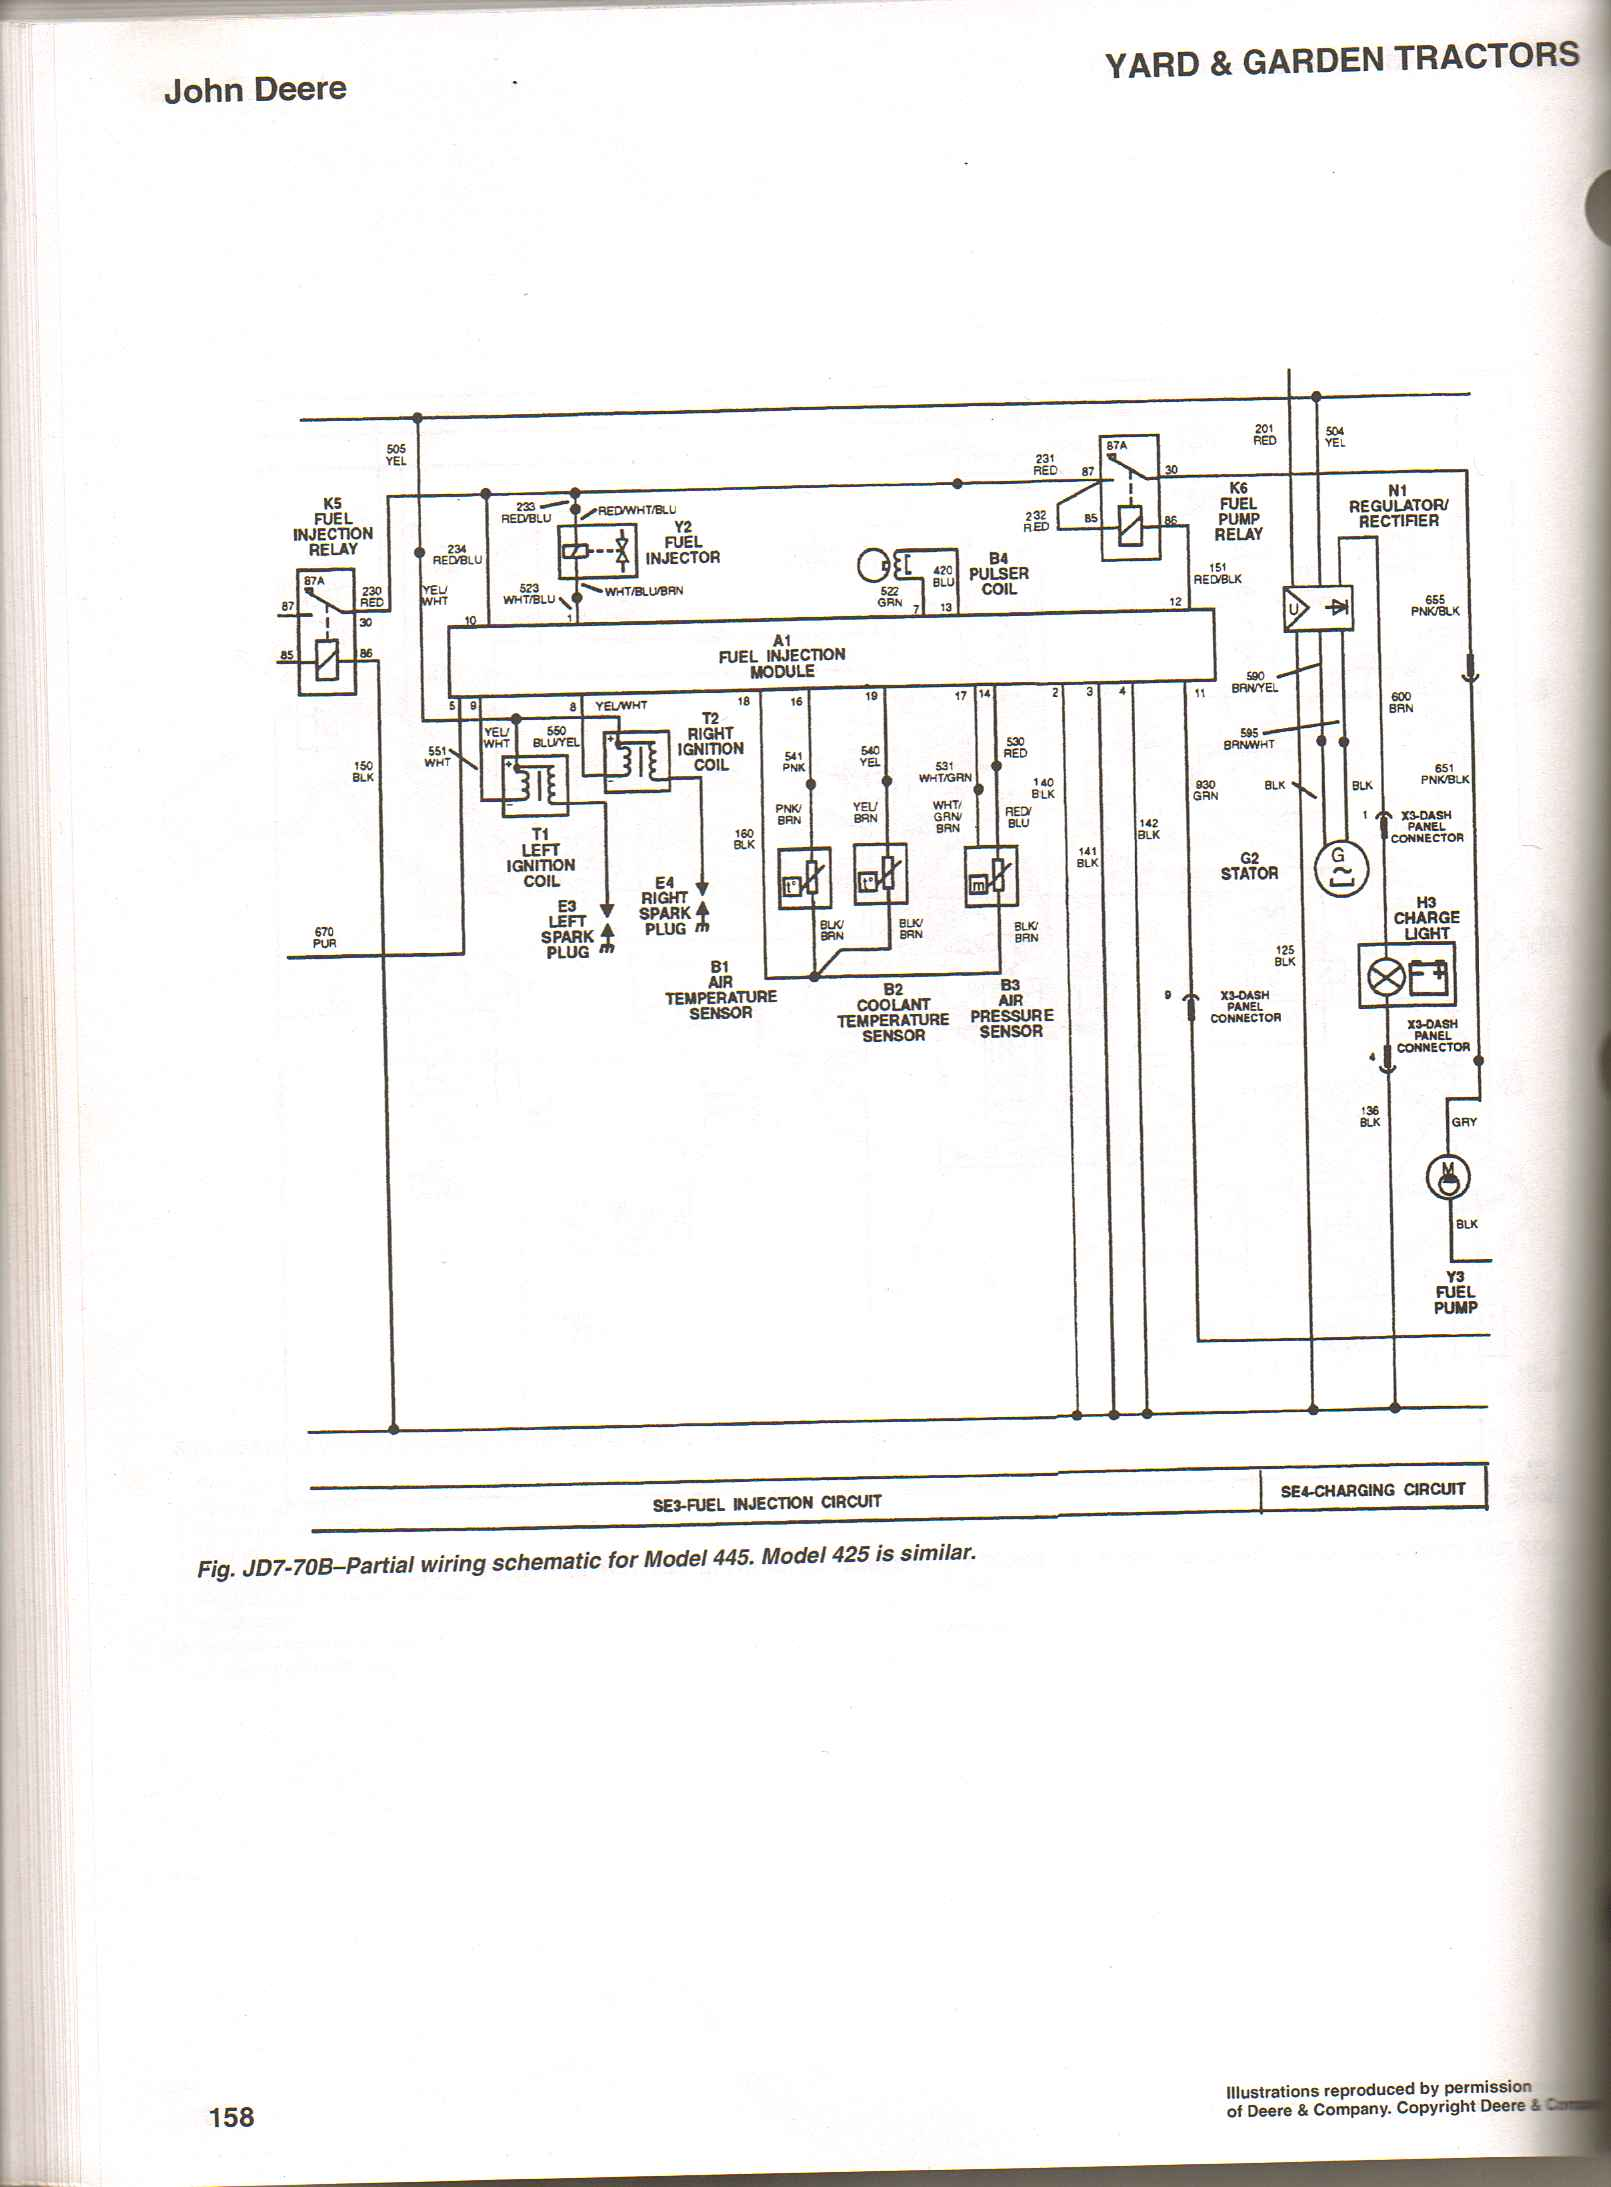 john deere gx85 wiring diagram i ave a jd 425 whose fuel pump with key off and out of the  i ave a jd 425 whose fuel pump with key off and out of the